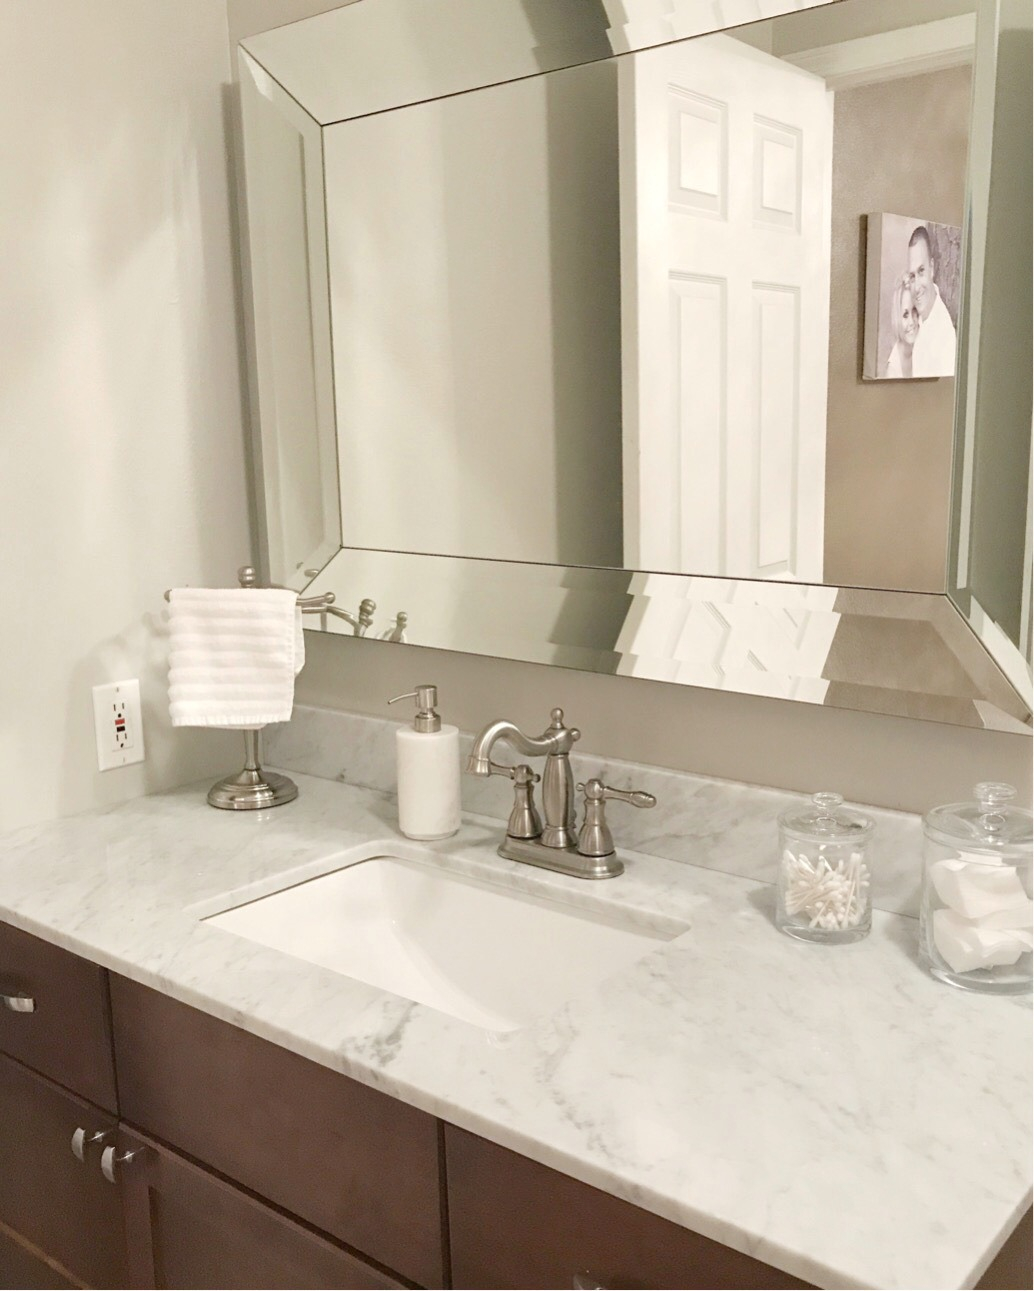 Small Master Bath ideas - Sherwin Williams Repose Gray. Create a spa like feeling in your own bathroom. A Cup Full of Sass